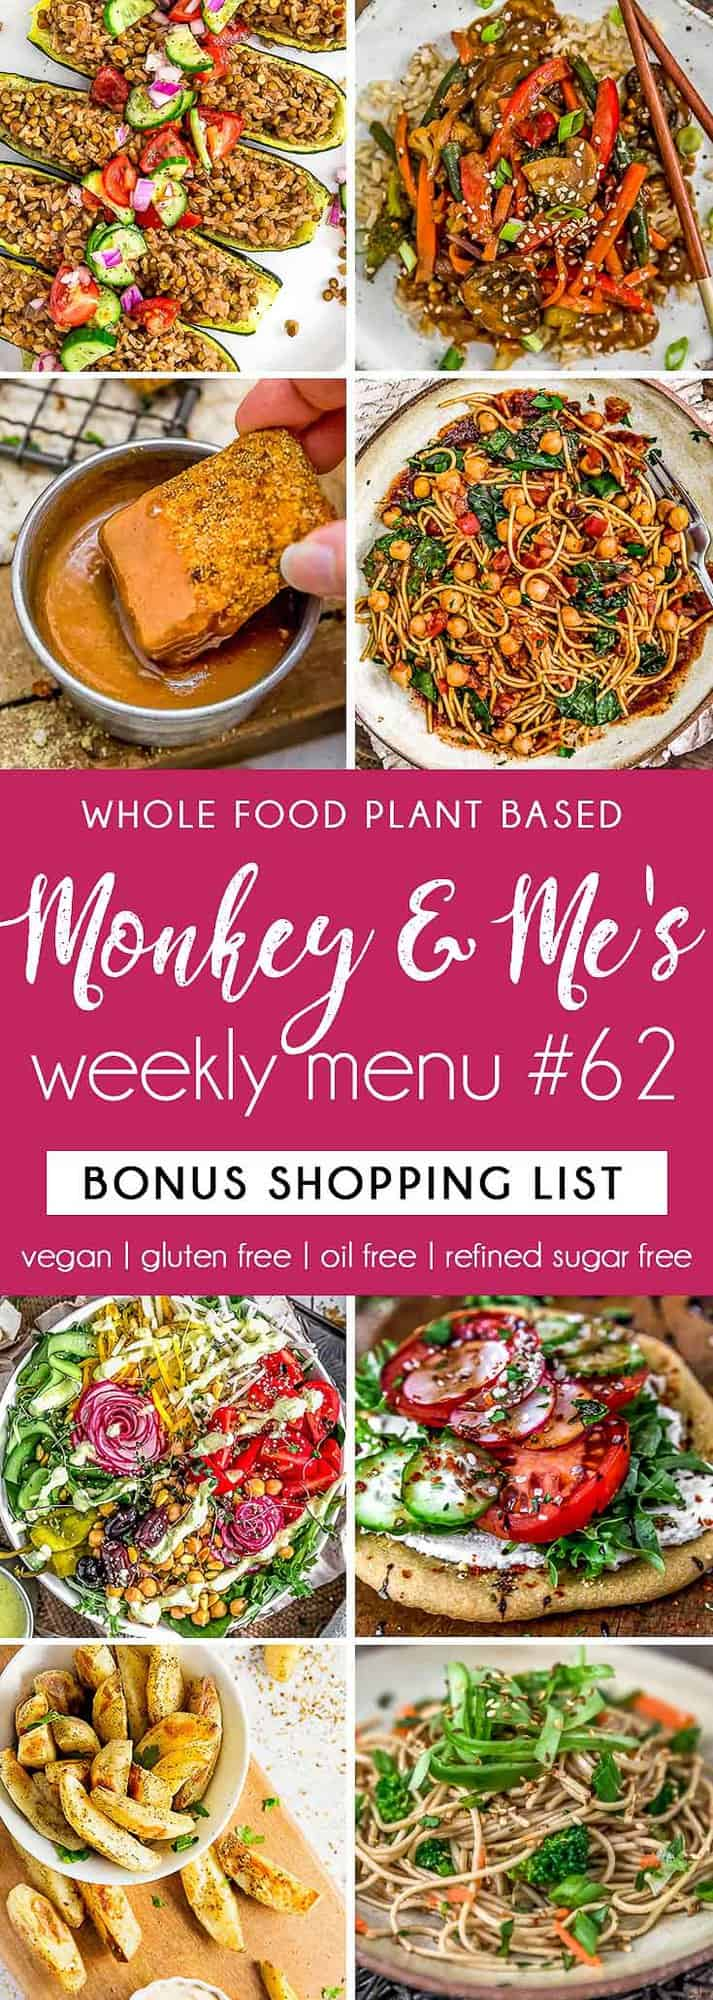 Monkey and Me's Menu 62 featuring 8 recipes